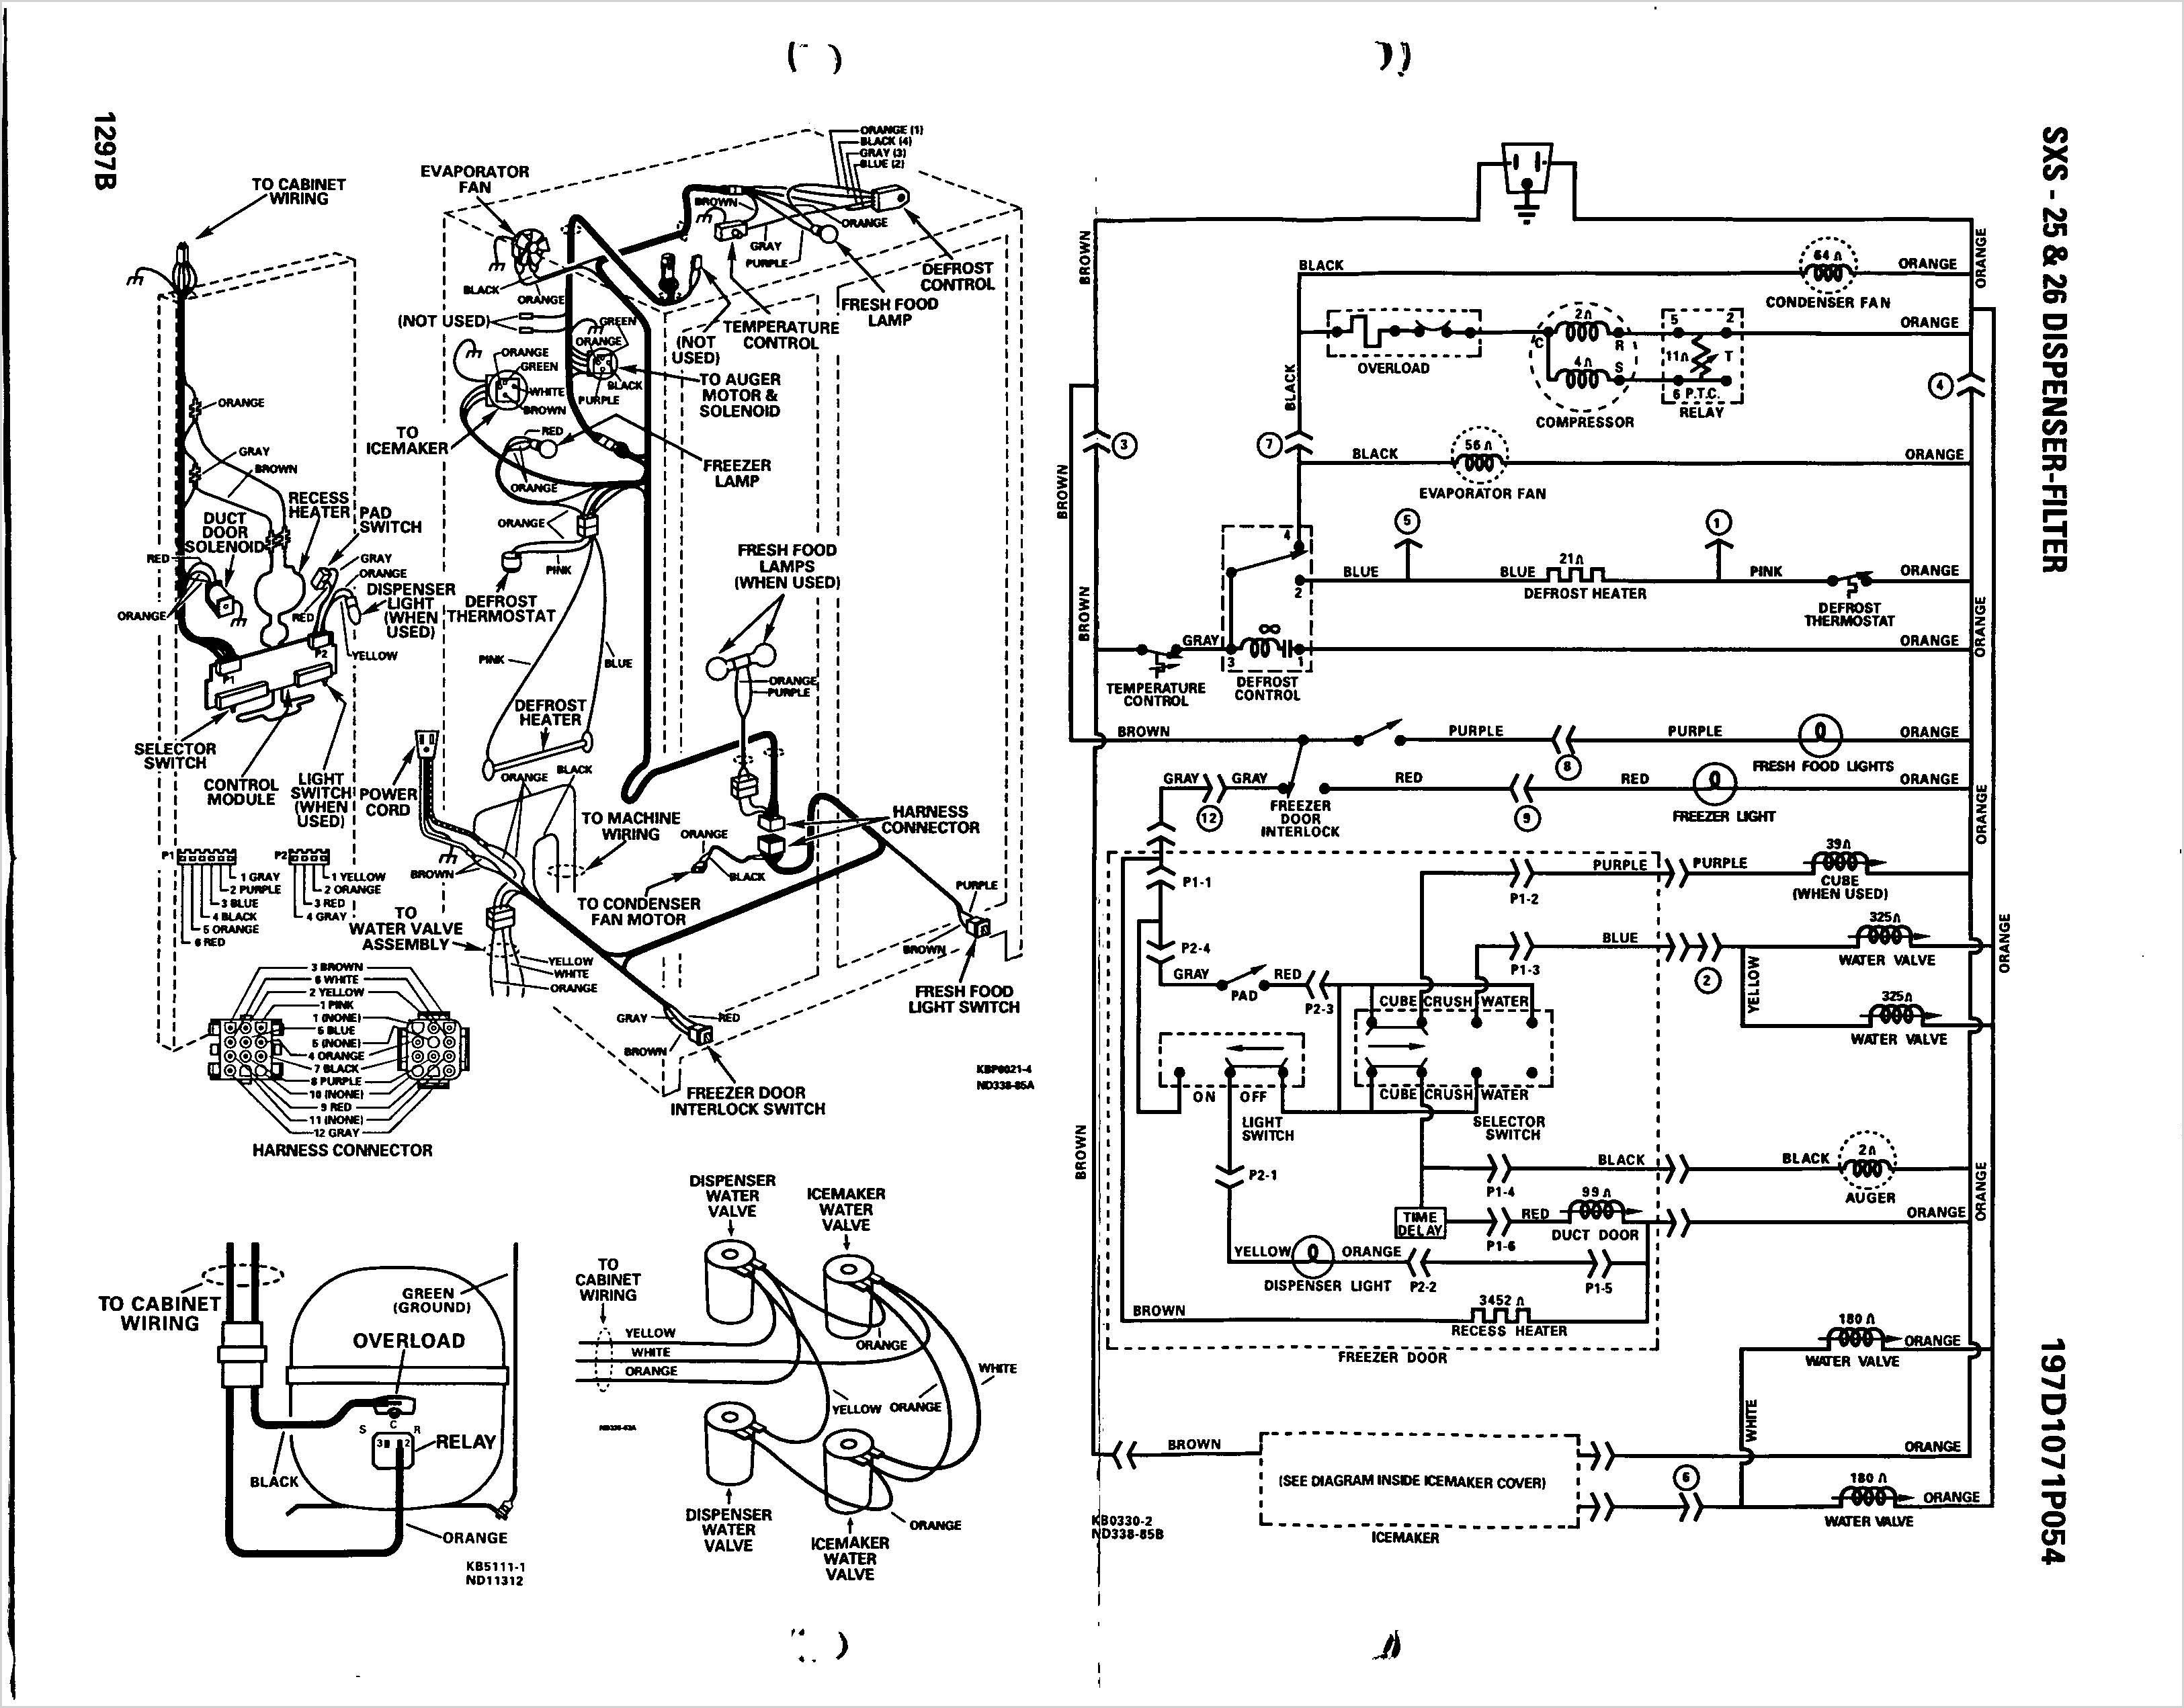 abb acs550 wiring diagram download Wiring Diagram for Clothes Dryer